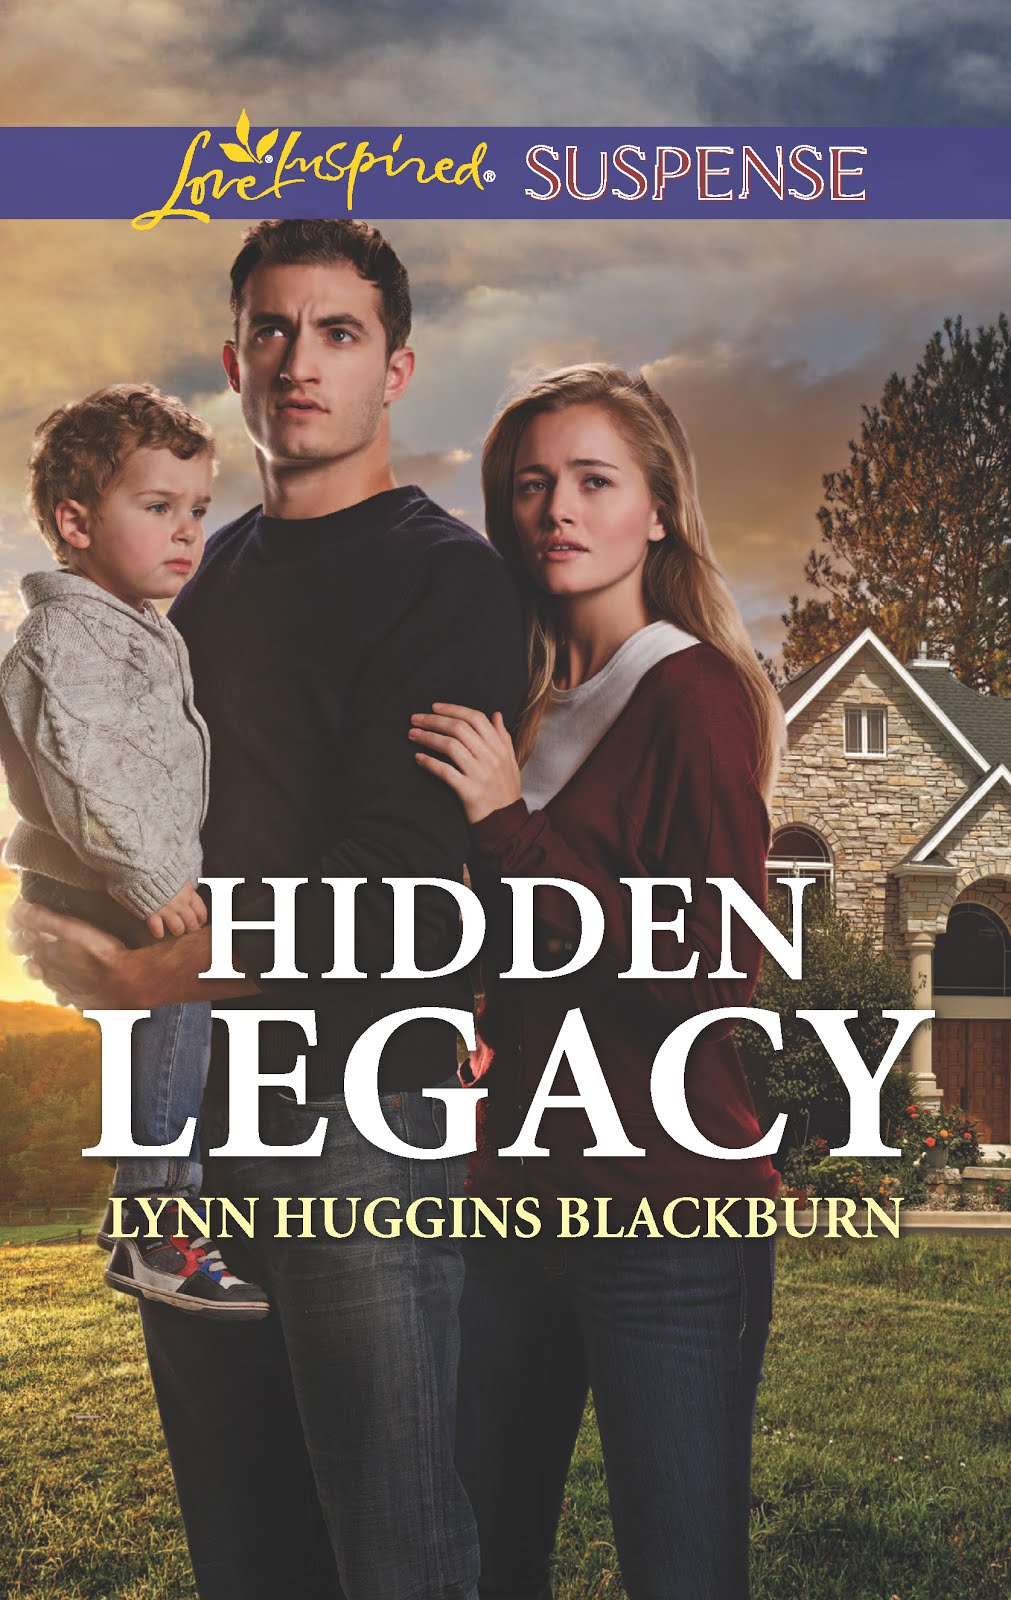 Hidden Legacy is available now!